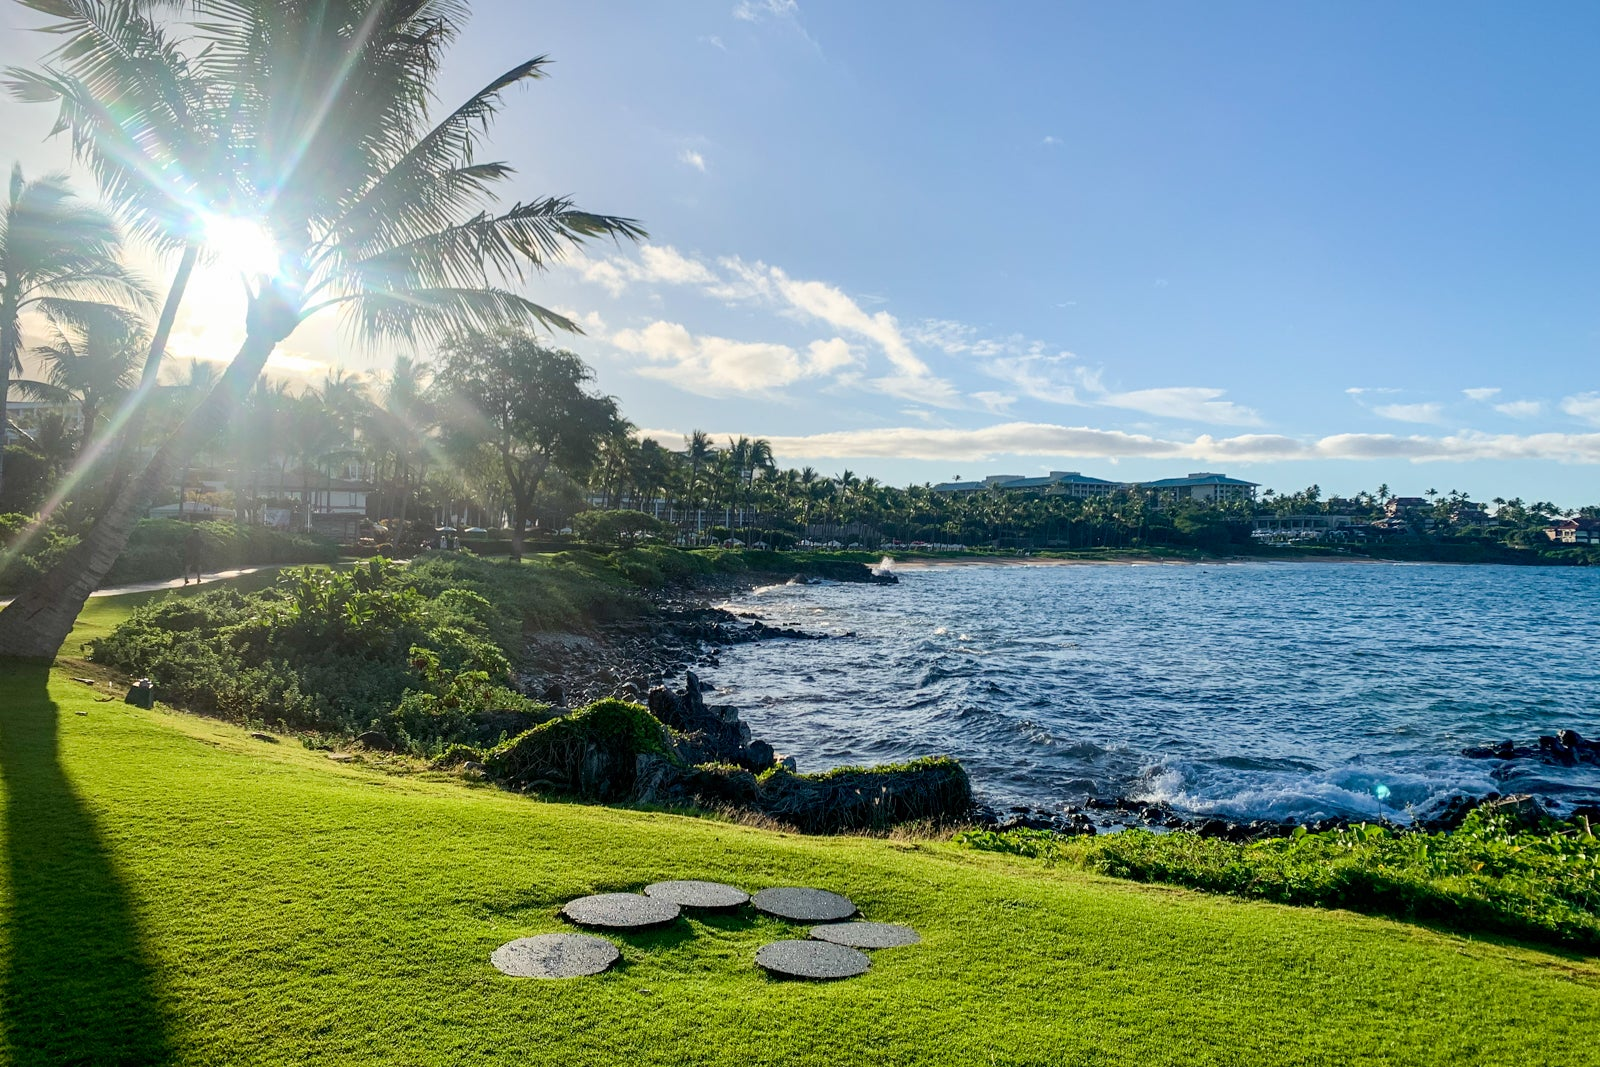 What it's like to vacation in a reopened Hawaii - The Points Guy